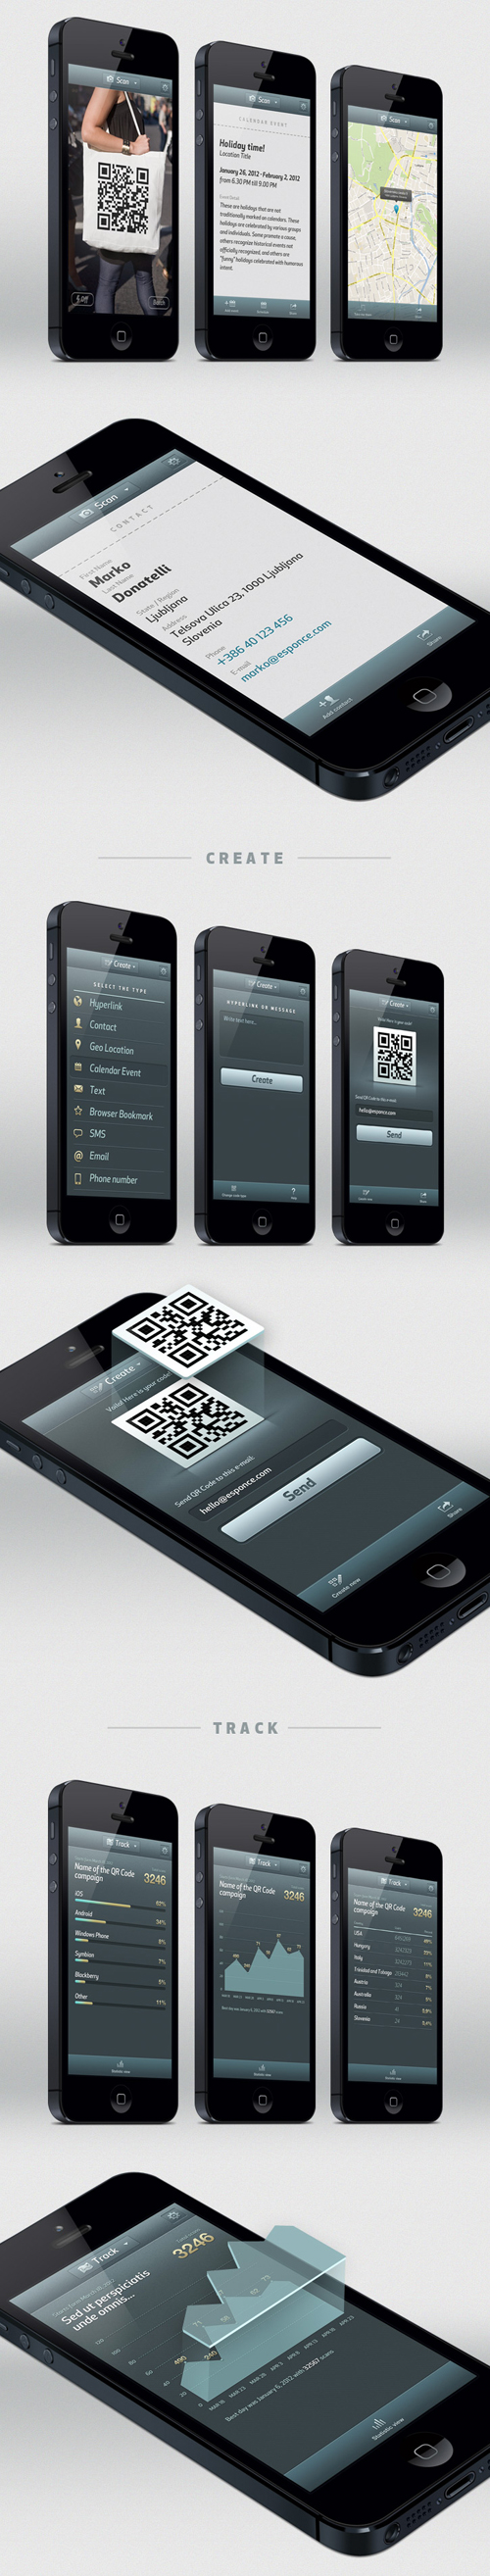 Mobile Apps Design with UI/UX-25